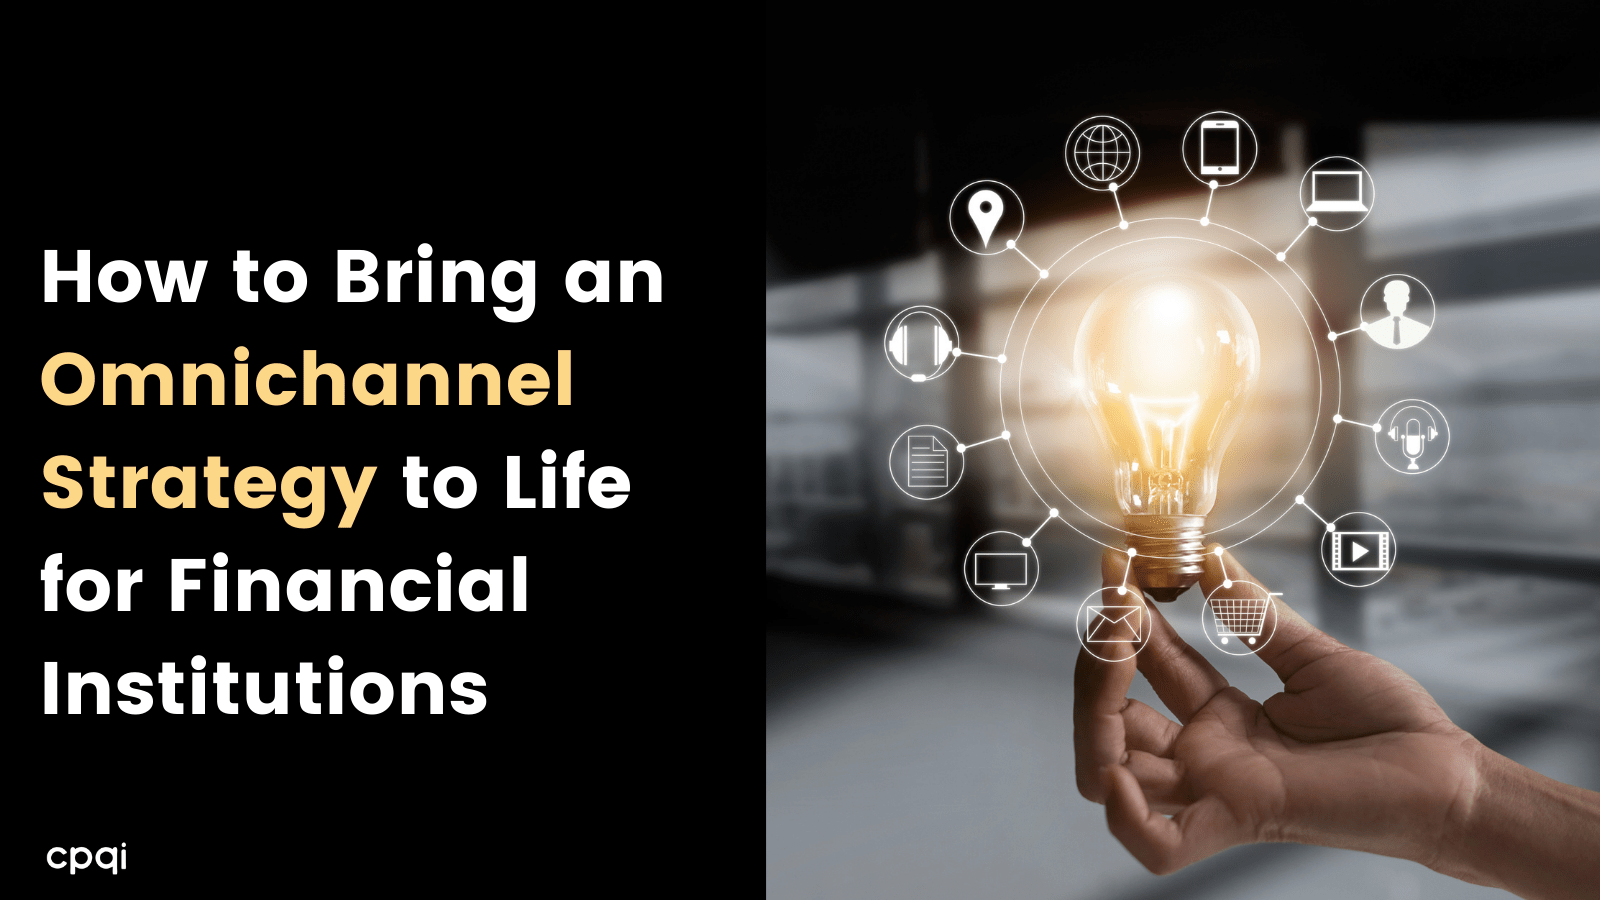 Omnichannel Strategy for Financial Institutions